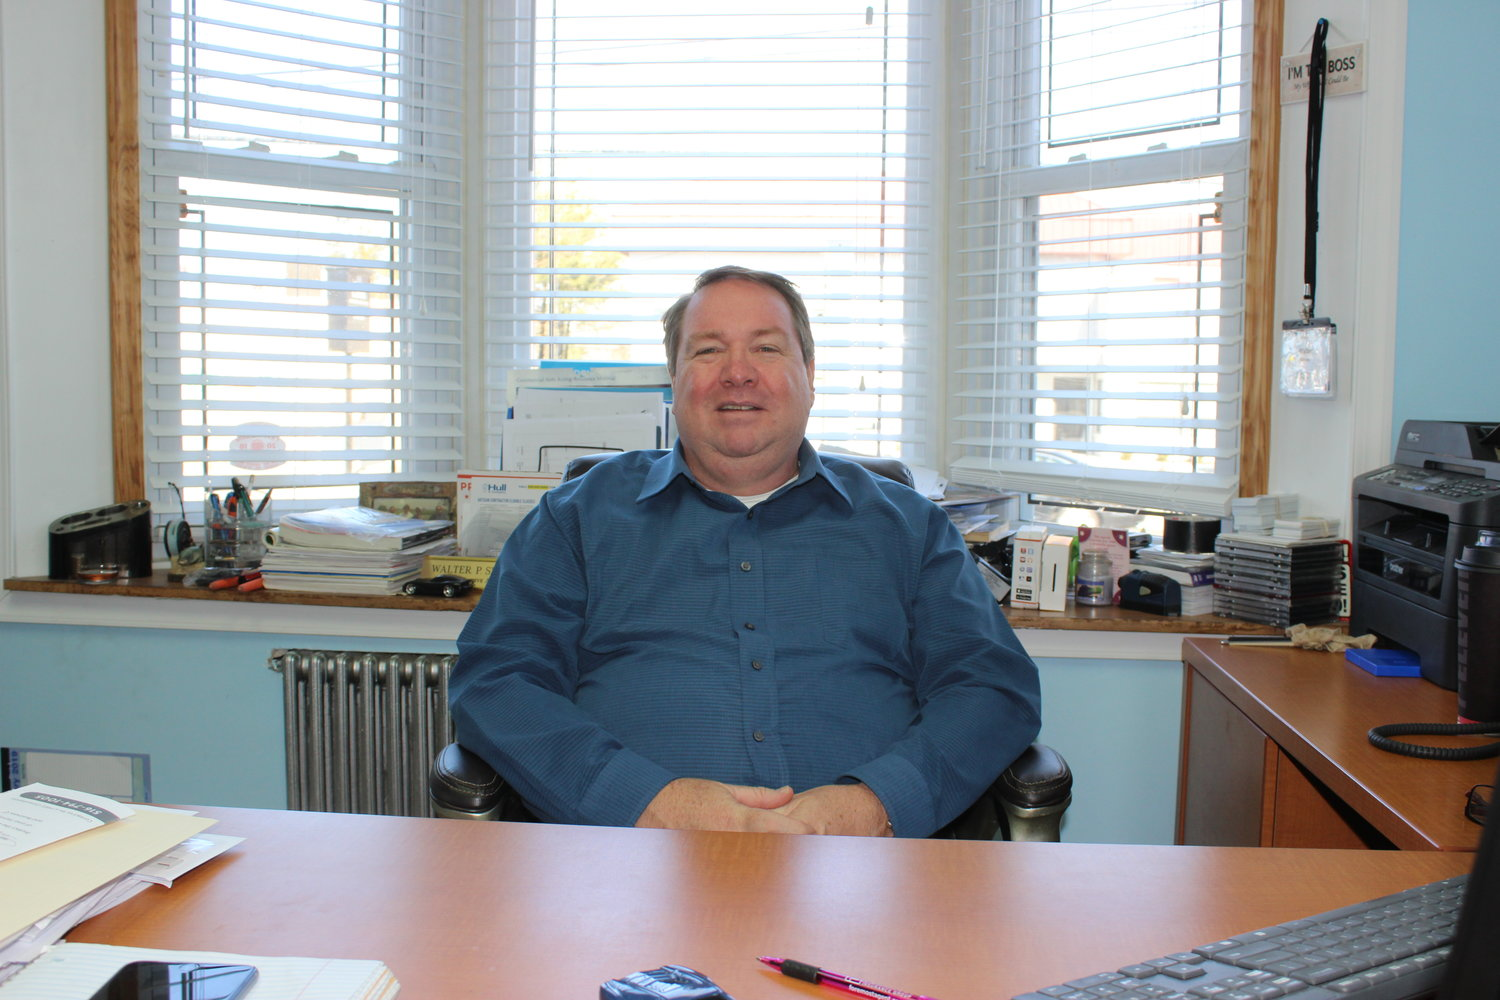 Walter Skinner, a past president of the East Meadow Chamber of Commerce, is a member of the committee.